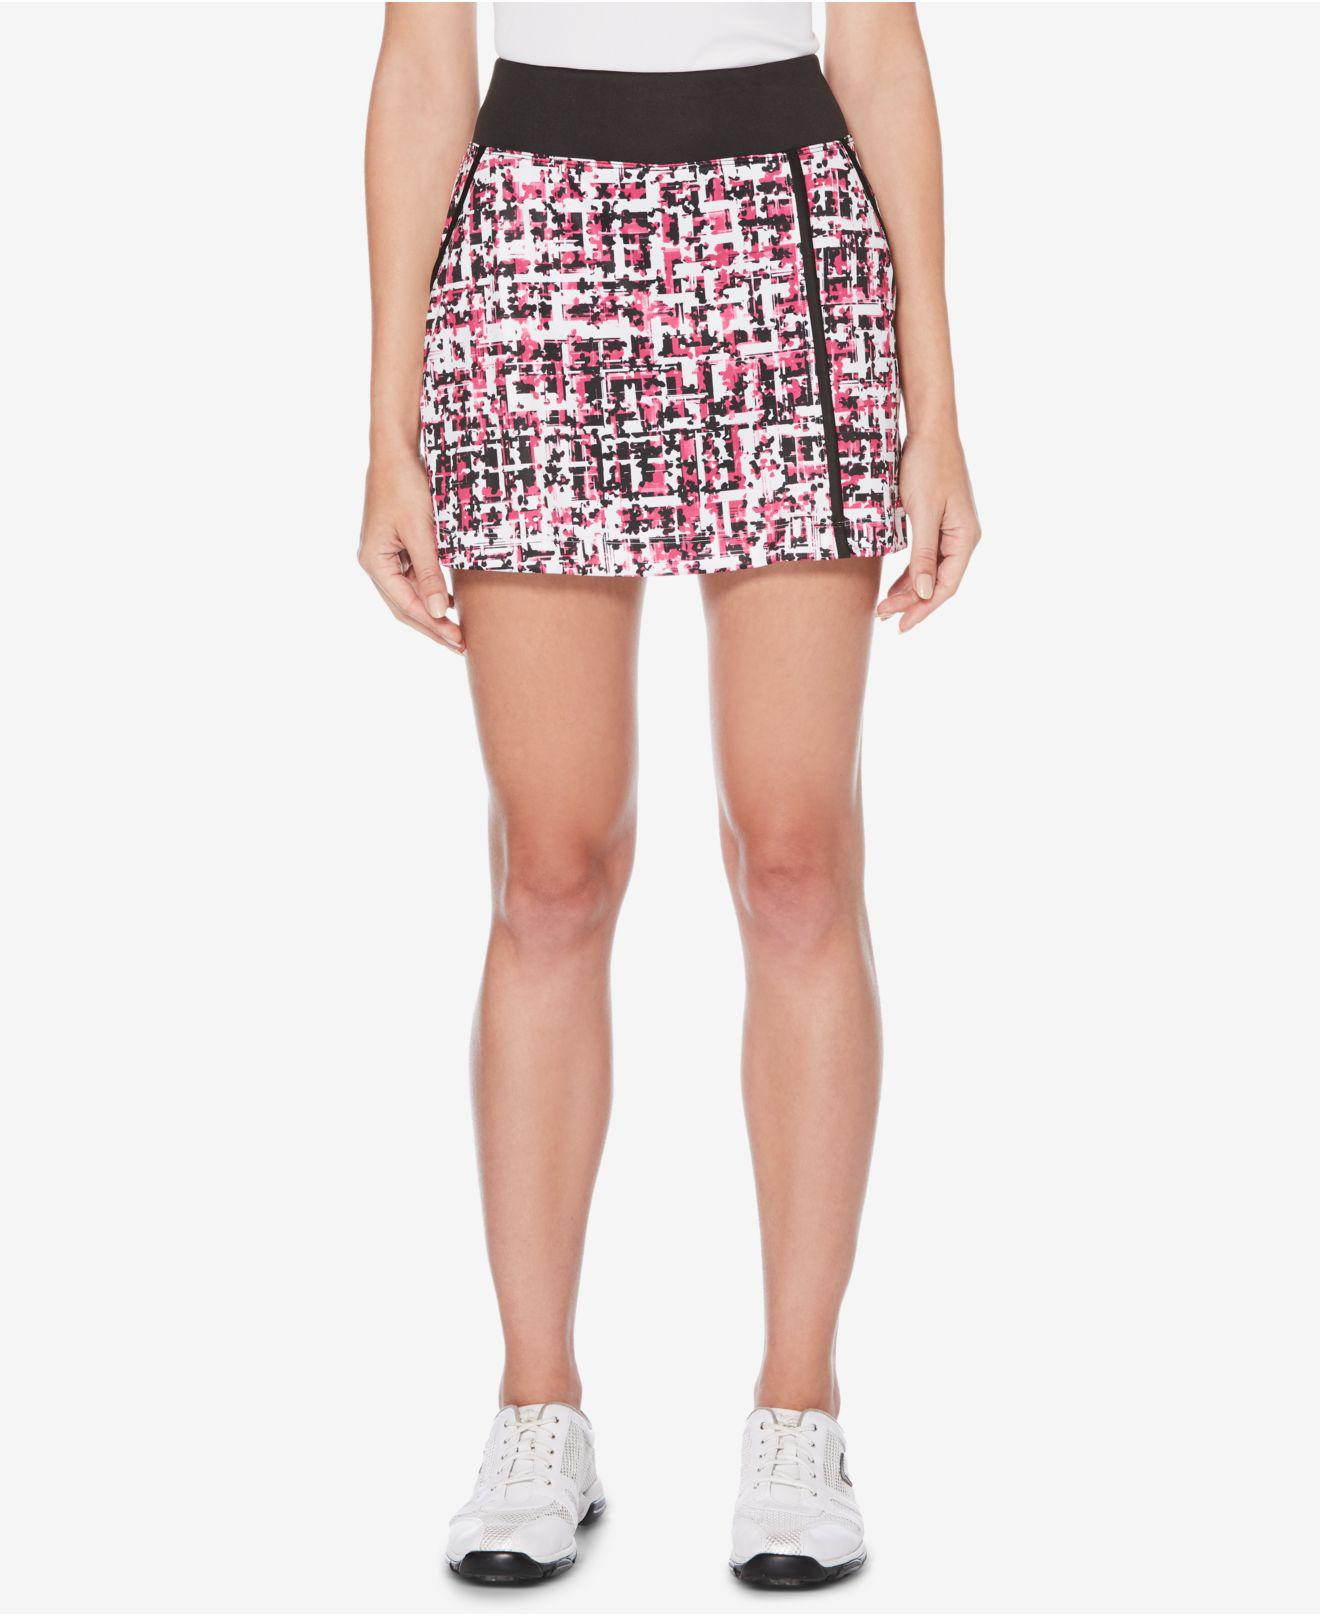 09316ebc83 Lyst - PGA TOUR Printed Golf Skort in Pink